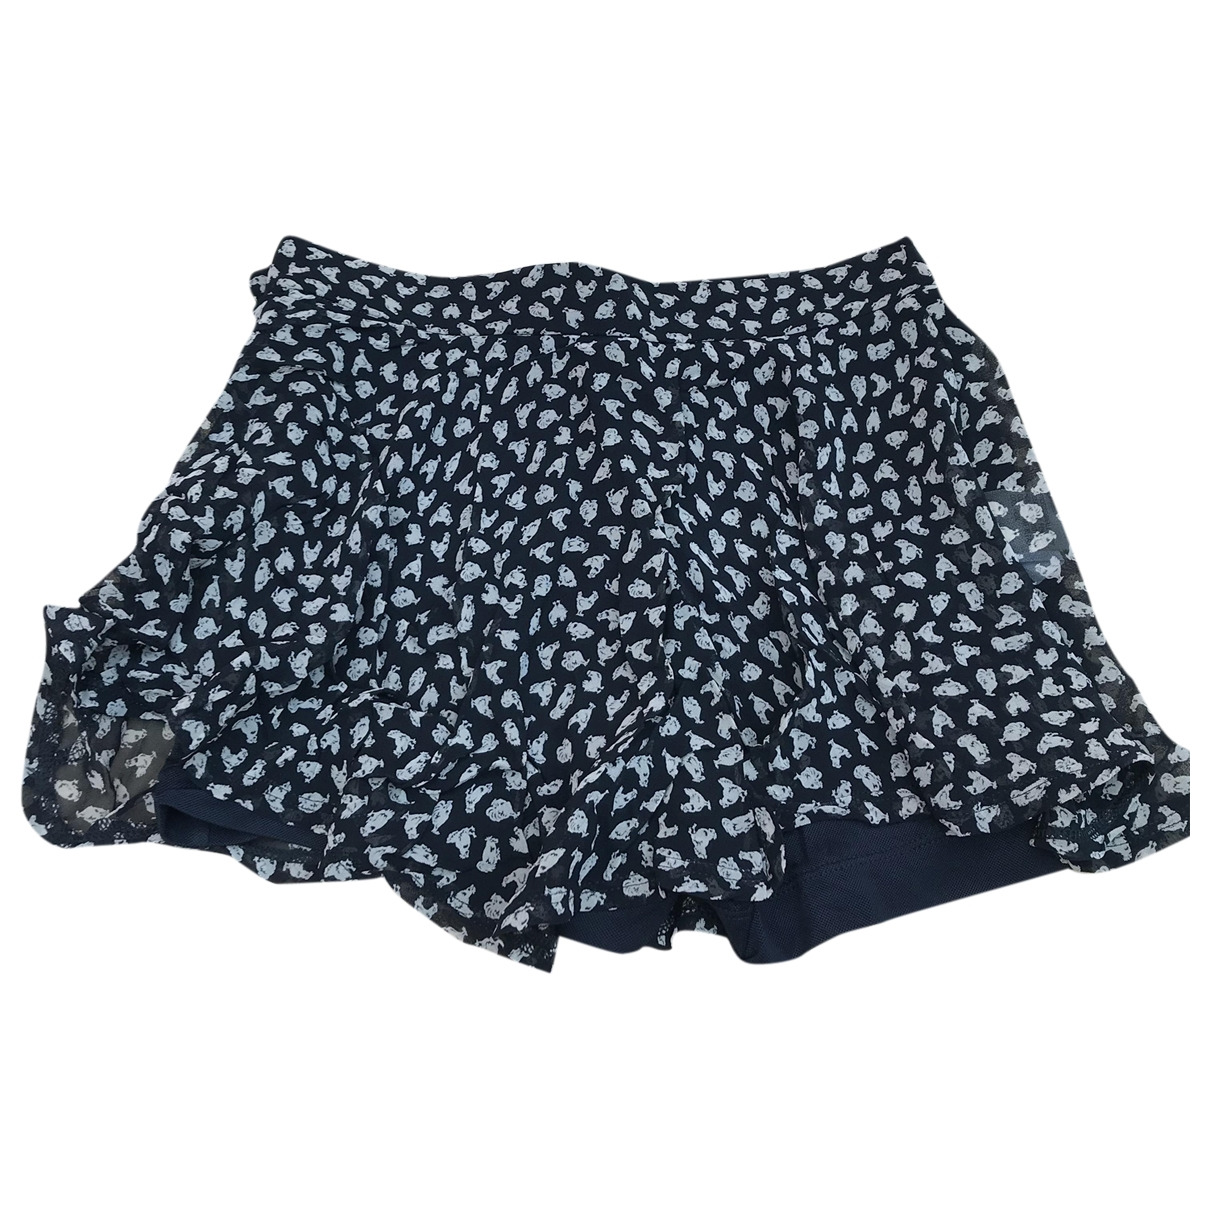 Moschino Cheap And Chic \N skirt for Women 42 IT